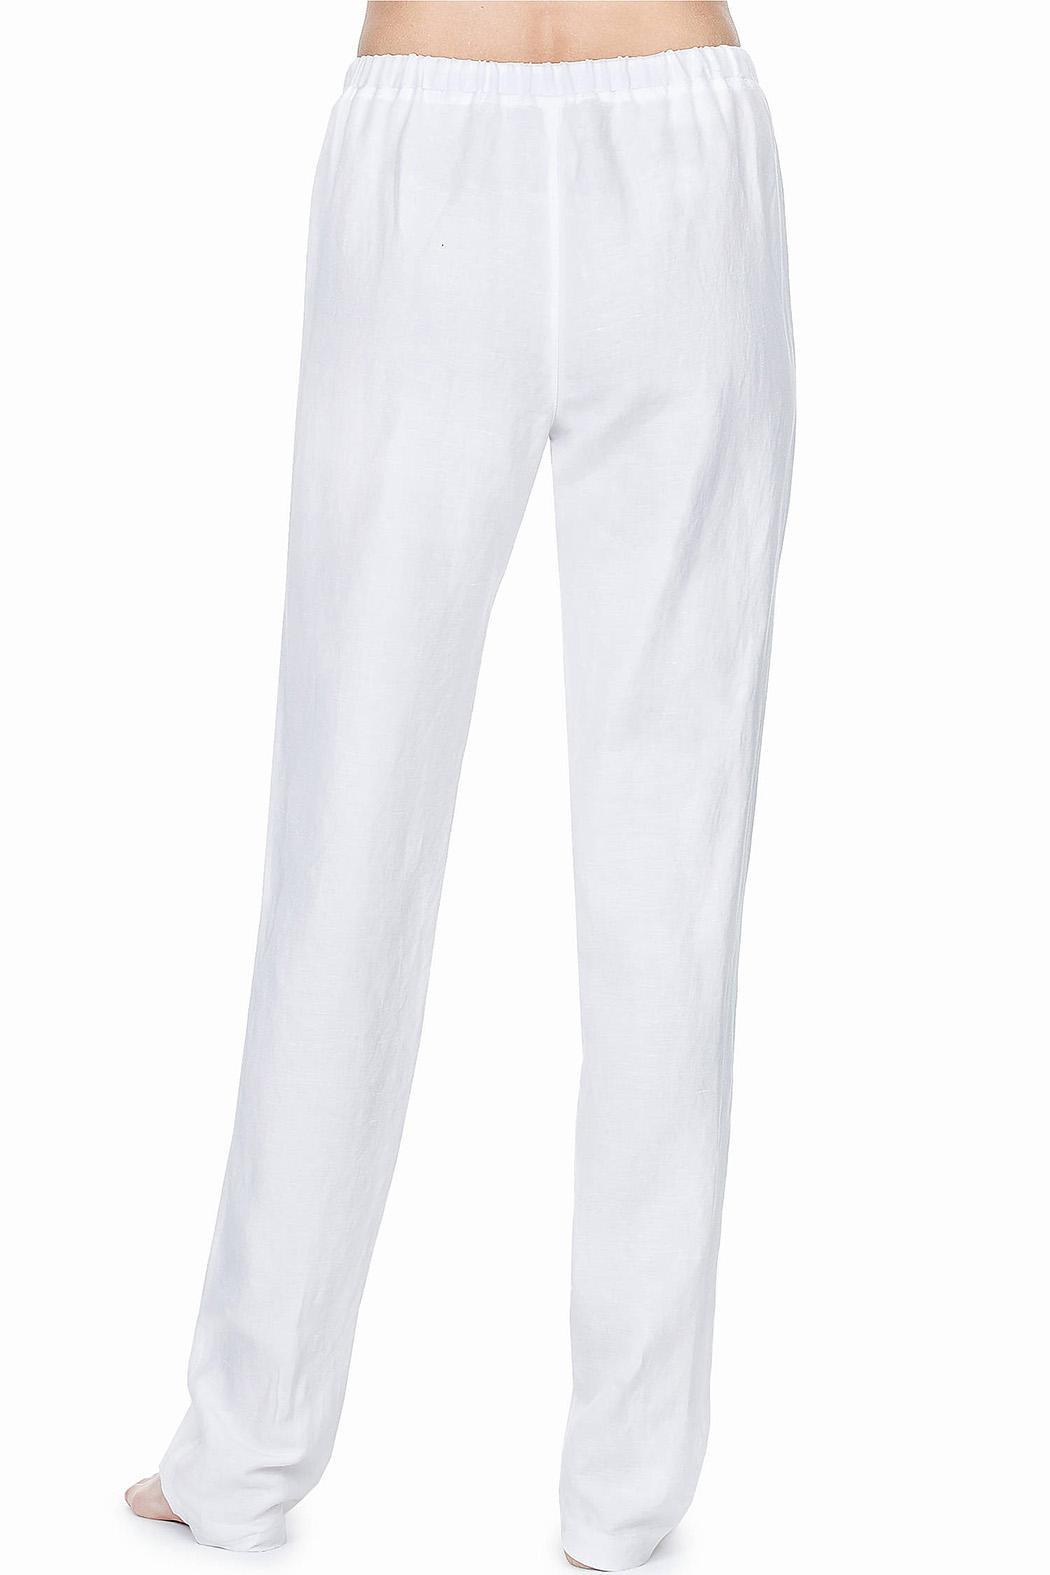 Lilla P White Drawstring Pants from Charleston by Embroidery ...